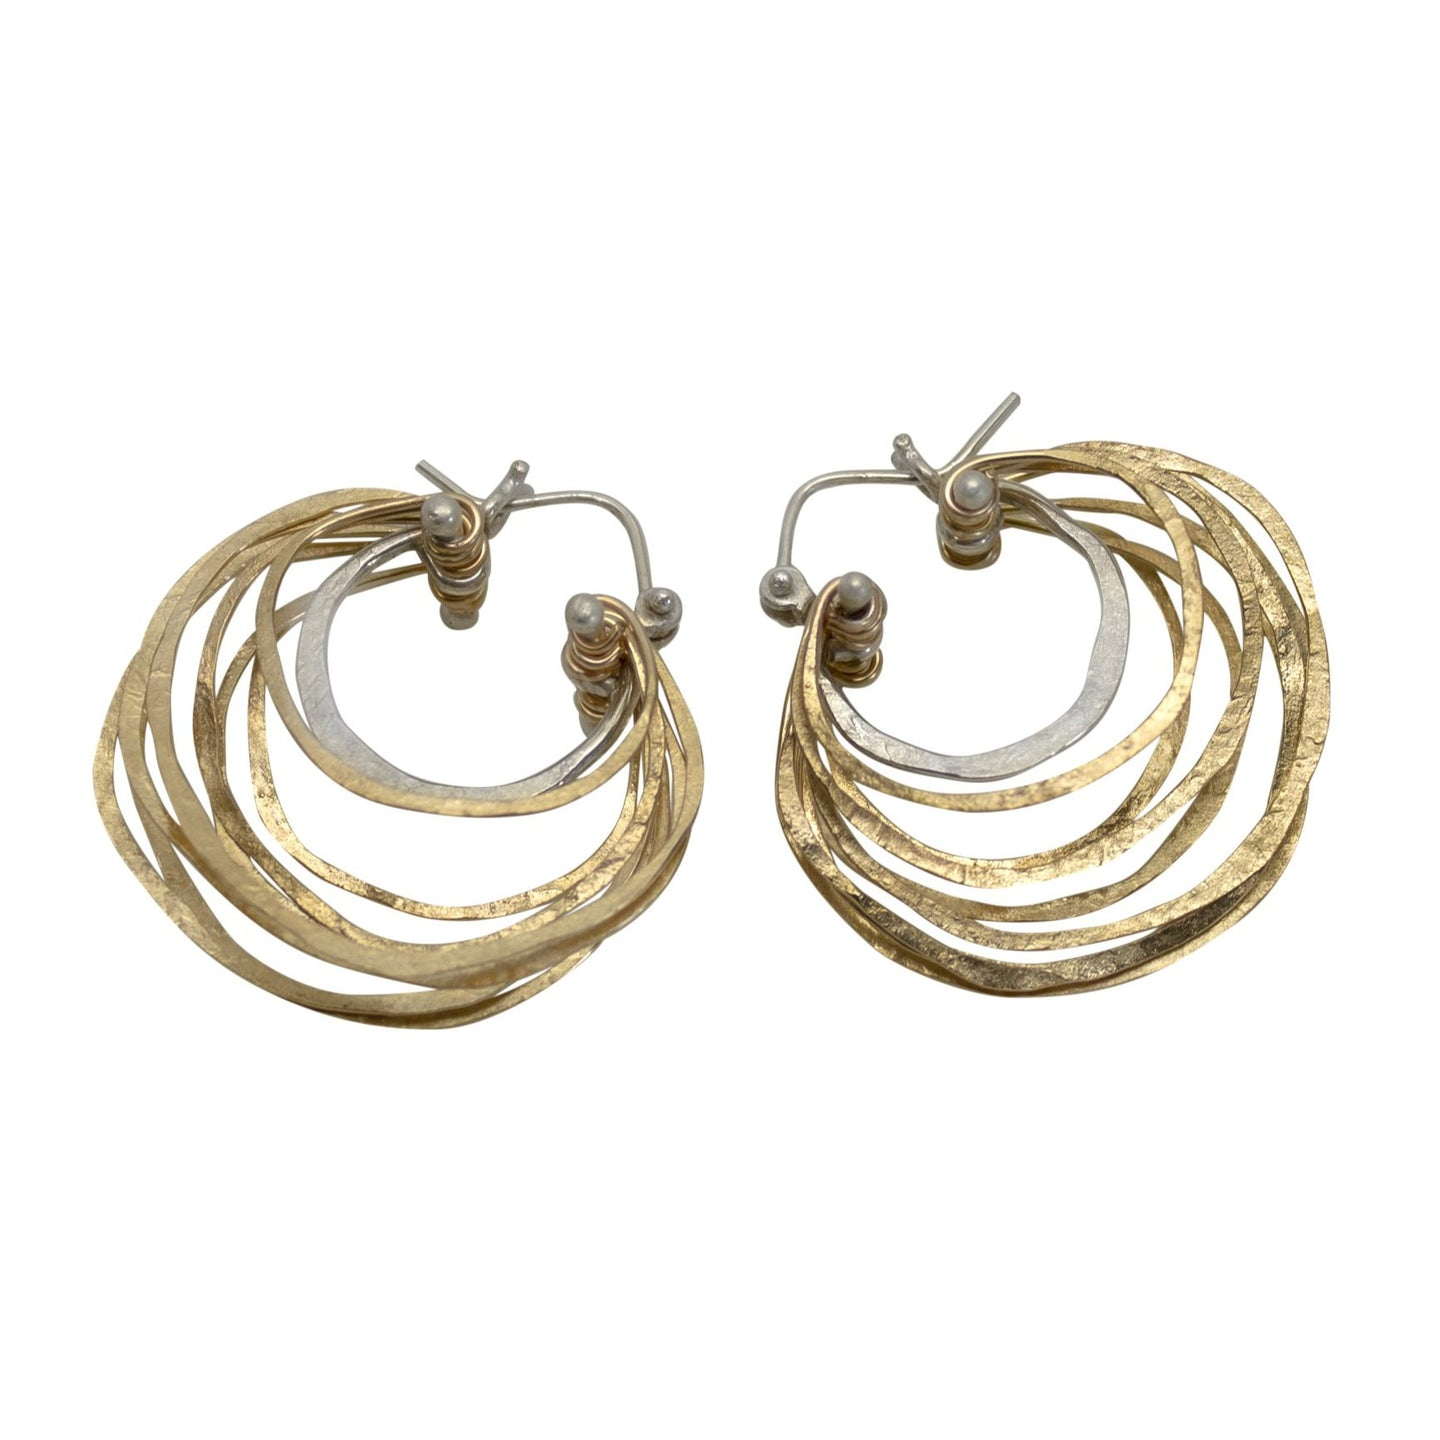 Small Crescent Hoop Earrings in 14kt Gold Fill